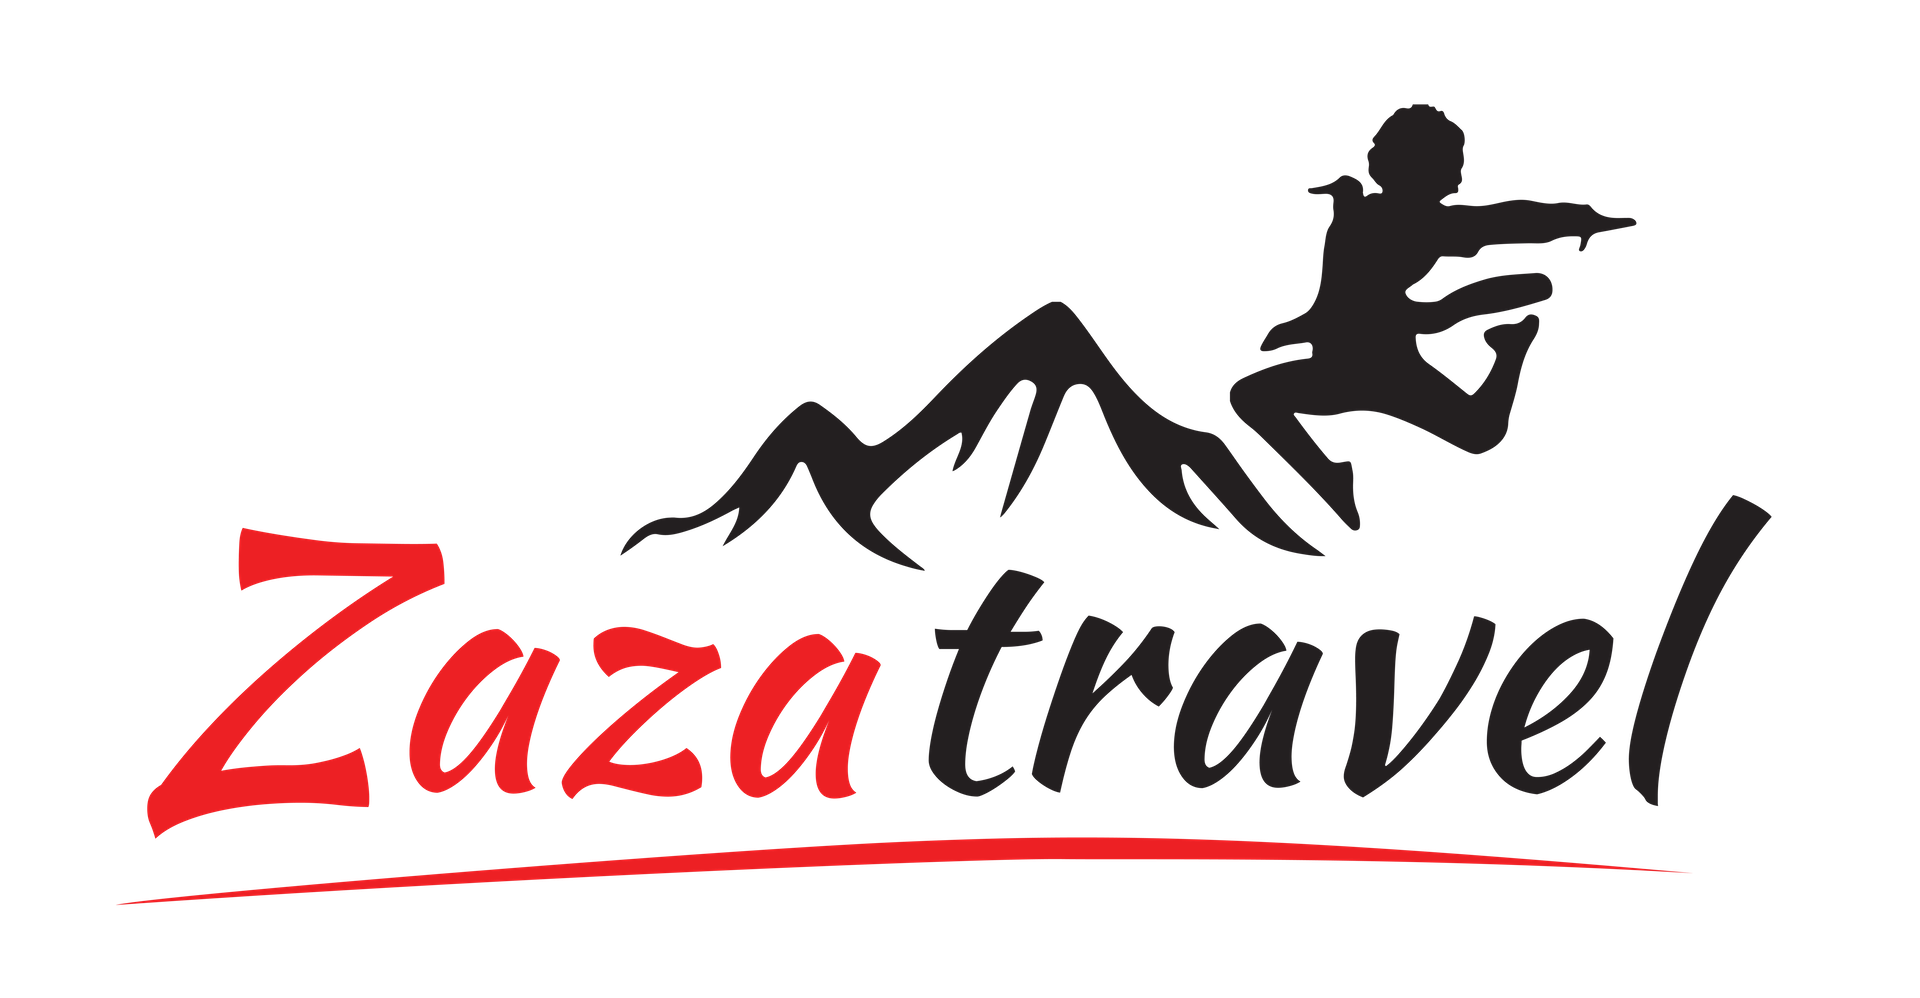 Zaza Travel